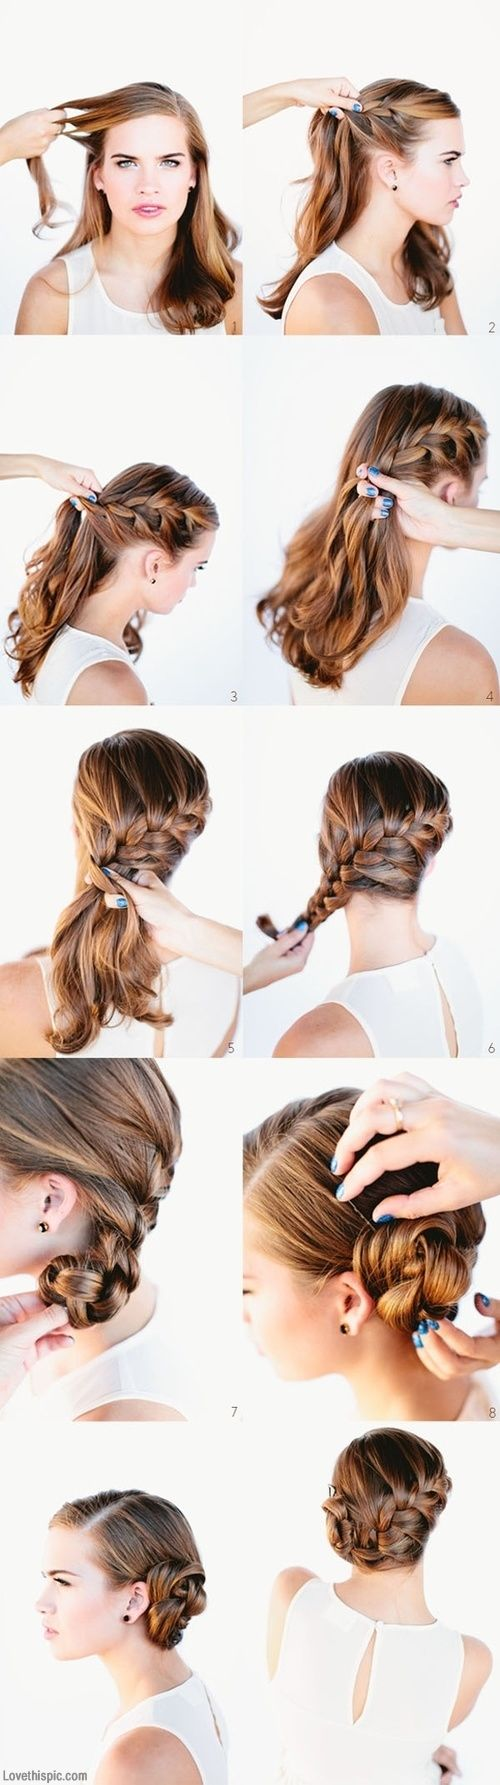 DIY wedding hairstyle wedding marriage diy diy crafts do it yourself diy art diy tips diy ideas diy photo diy picture diy photography easy diy